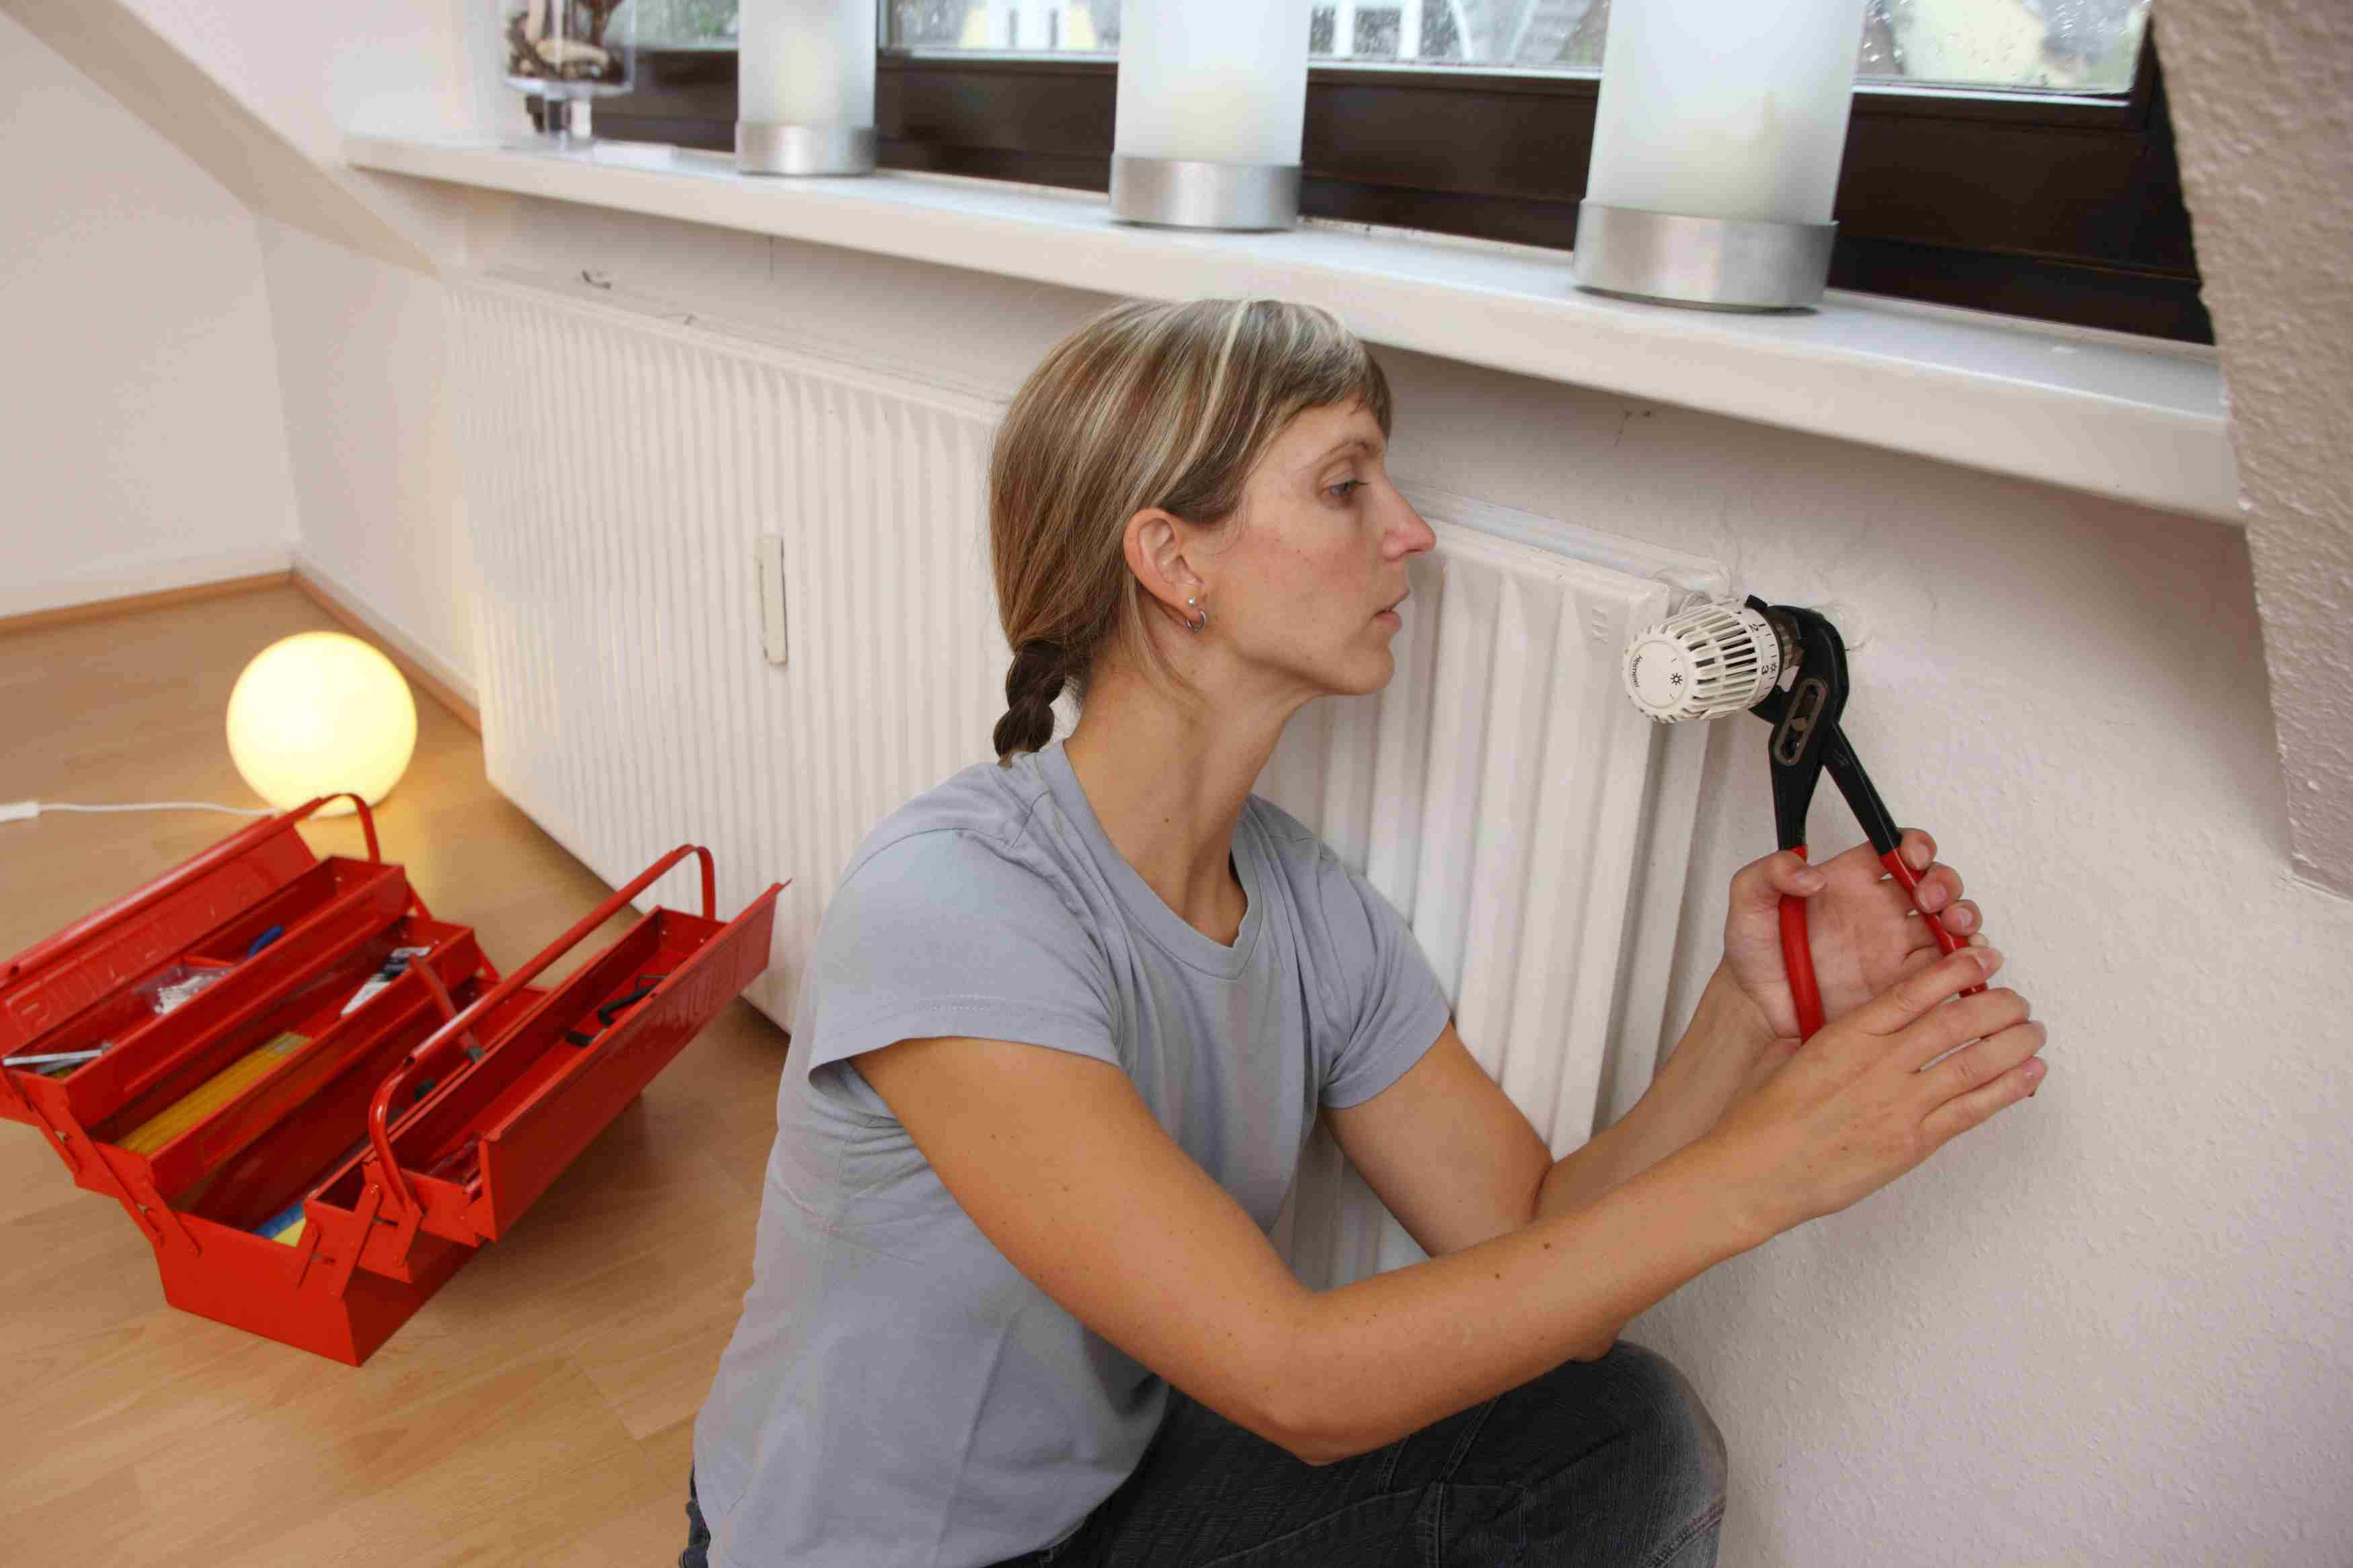 Woman using a wrench to tighten a thermostatic radiator valve.